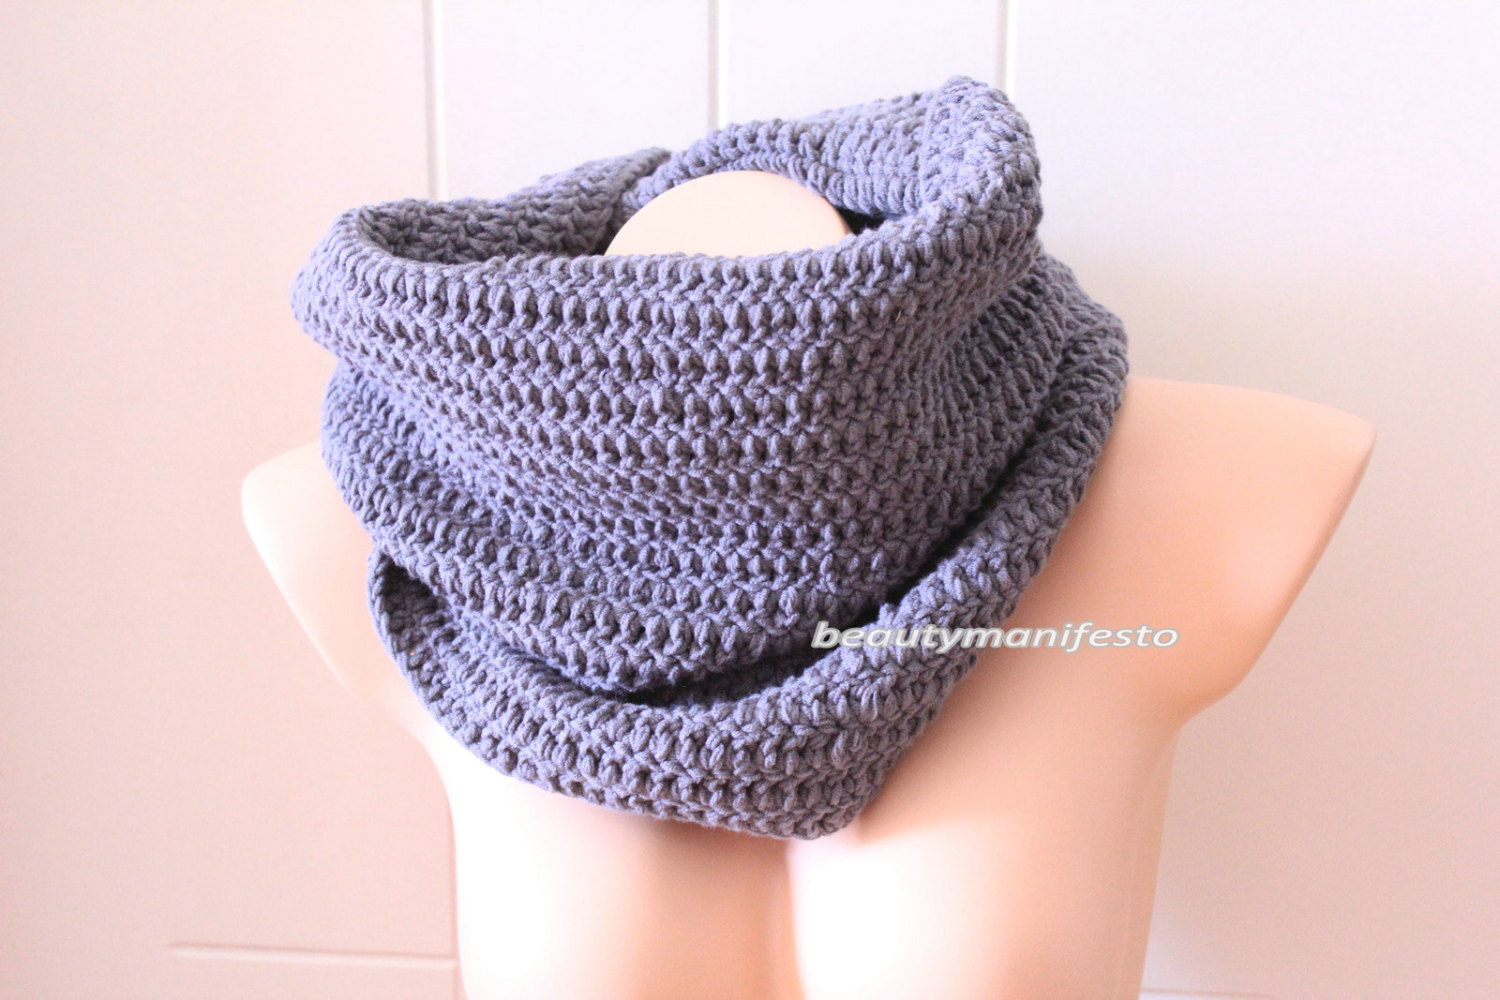 Oversized knit scarf,oversized chunky infinity scarf in grey color,unisex crochet grey infinity scarf,custom orders welcome